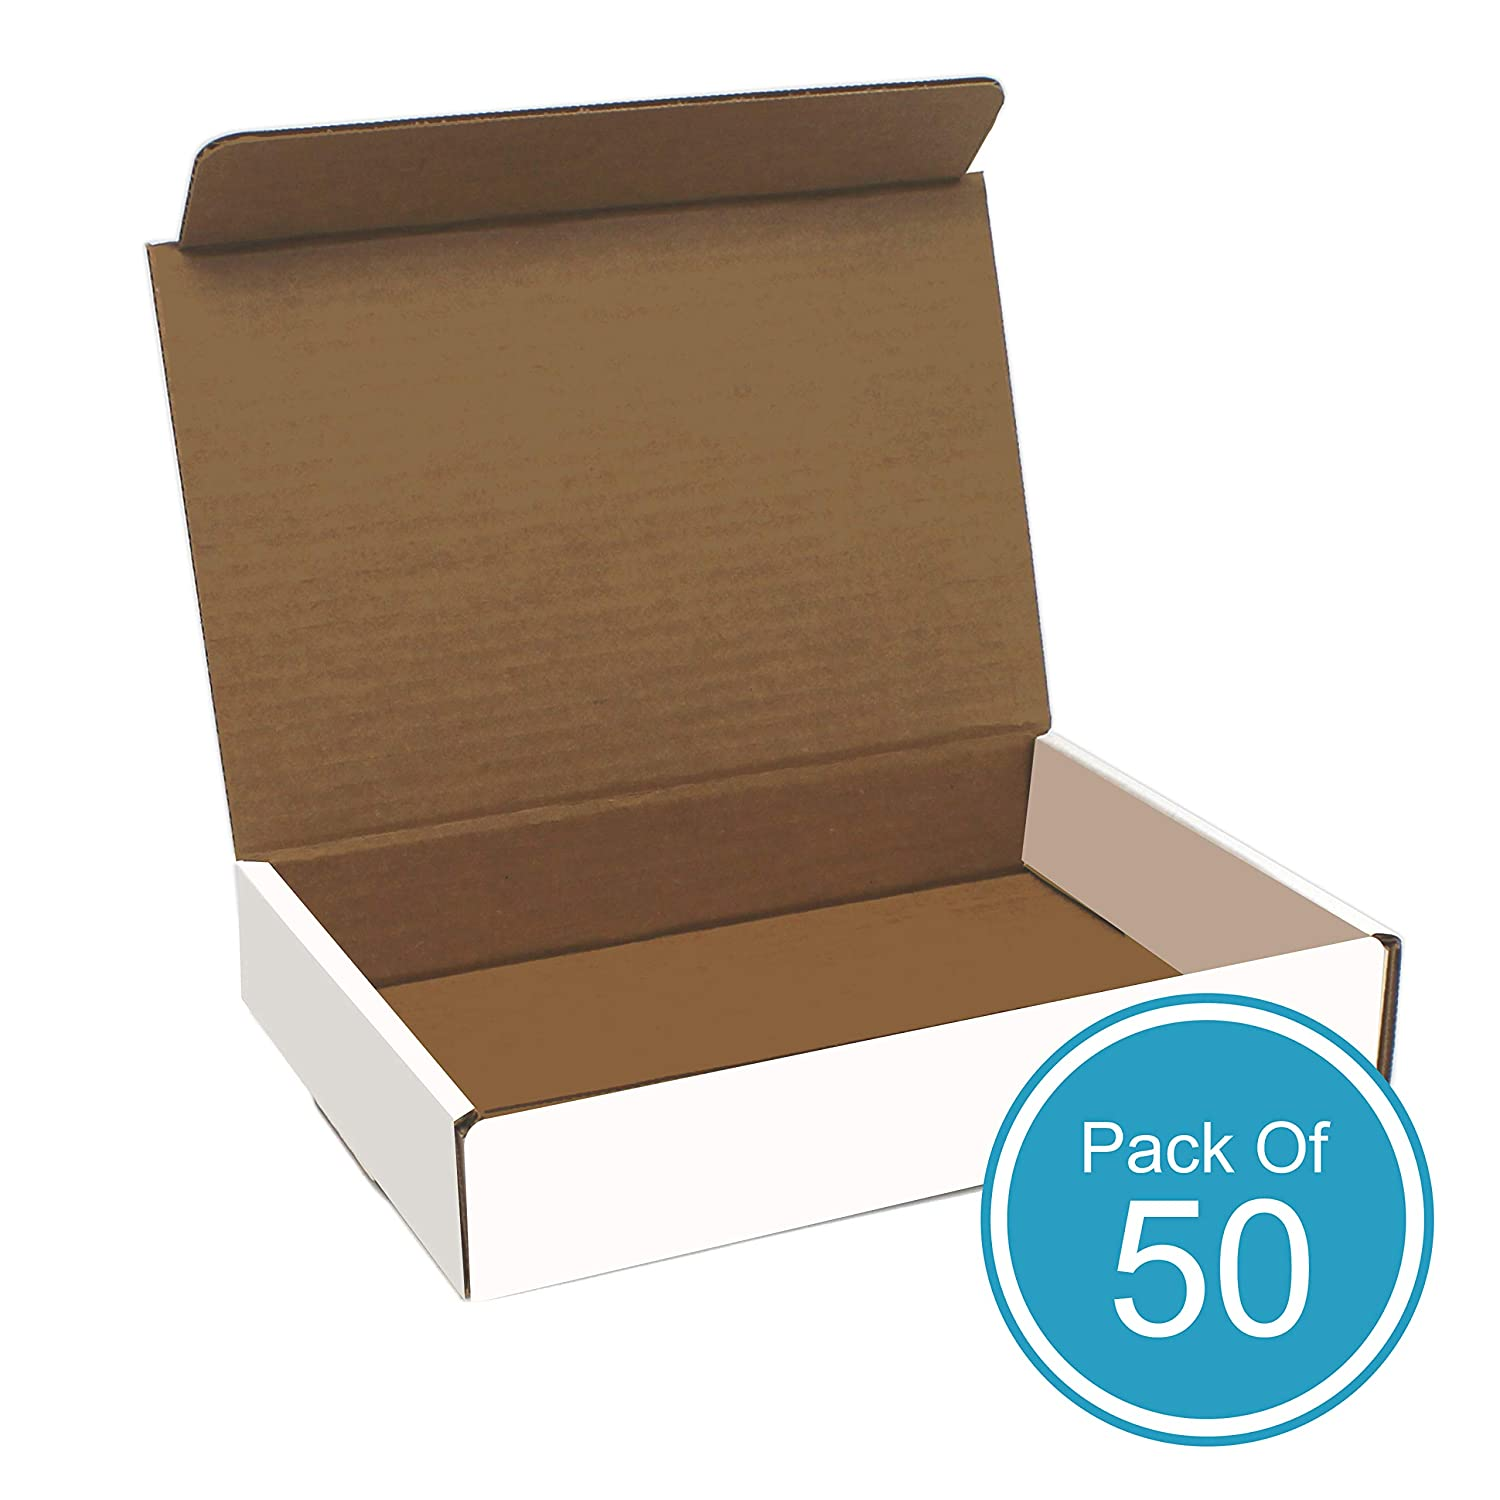 White Cardboard Shipping Box - Pack of 50, 11 x 8.75 x 2 Inches, White, Corrugated Box